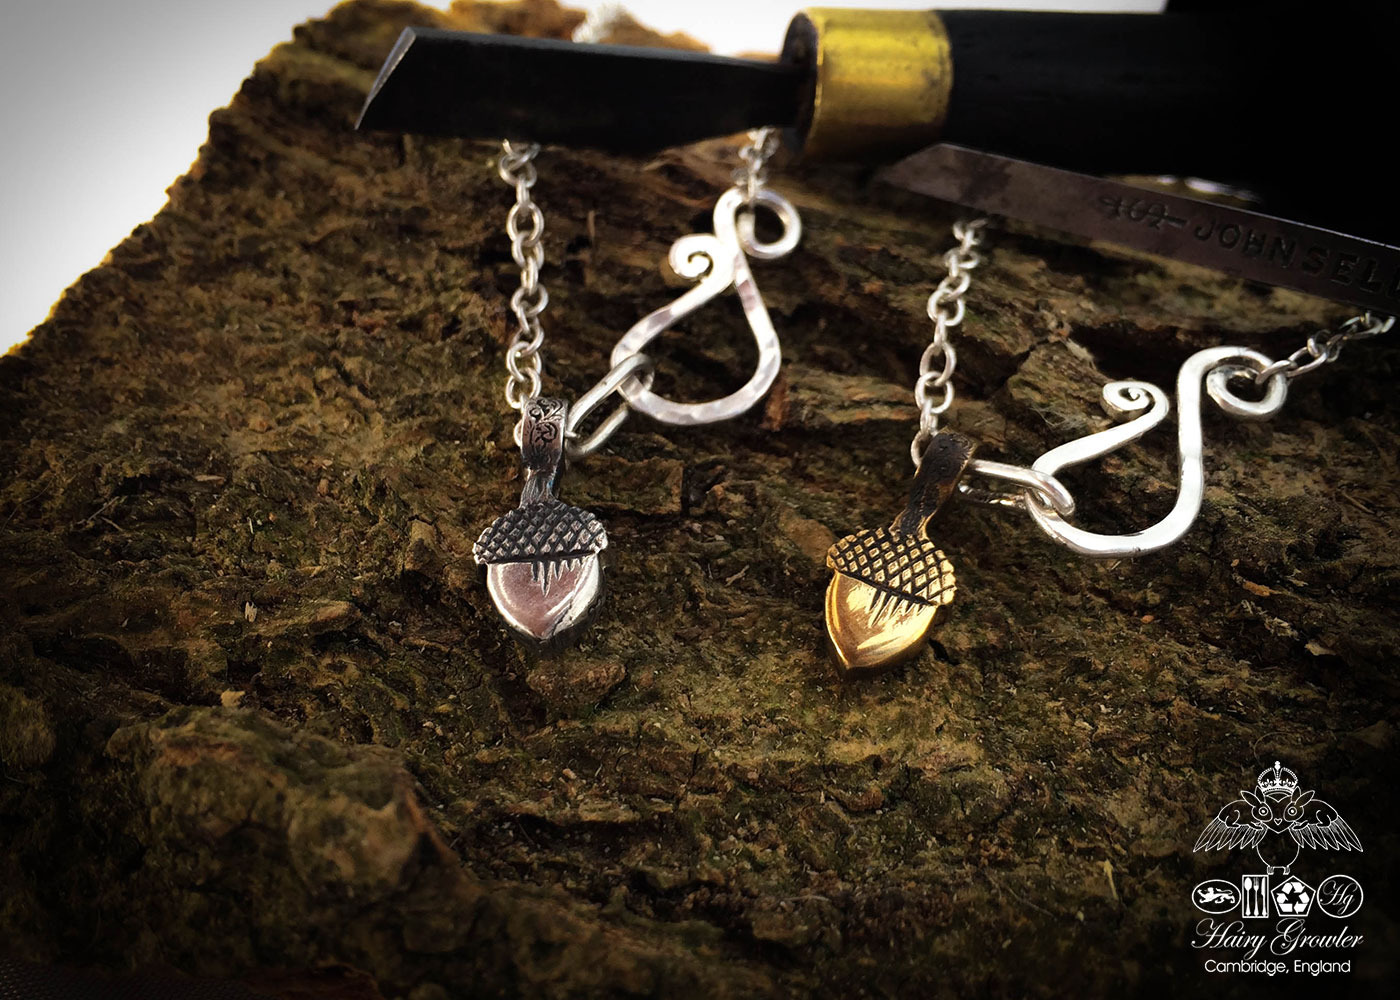 handmade silver and bronze acorn charms for a tree sculpture, necklace or bracelet